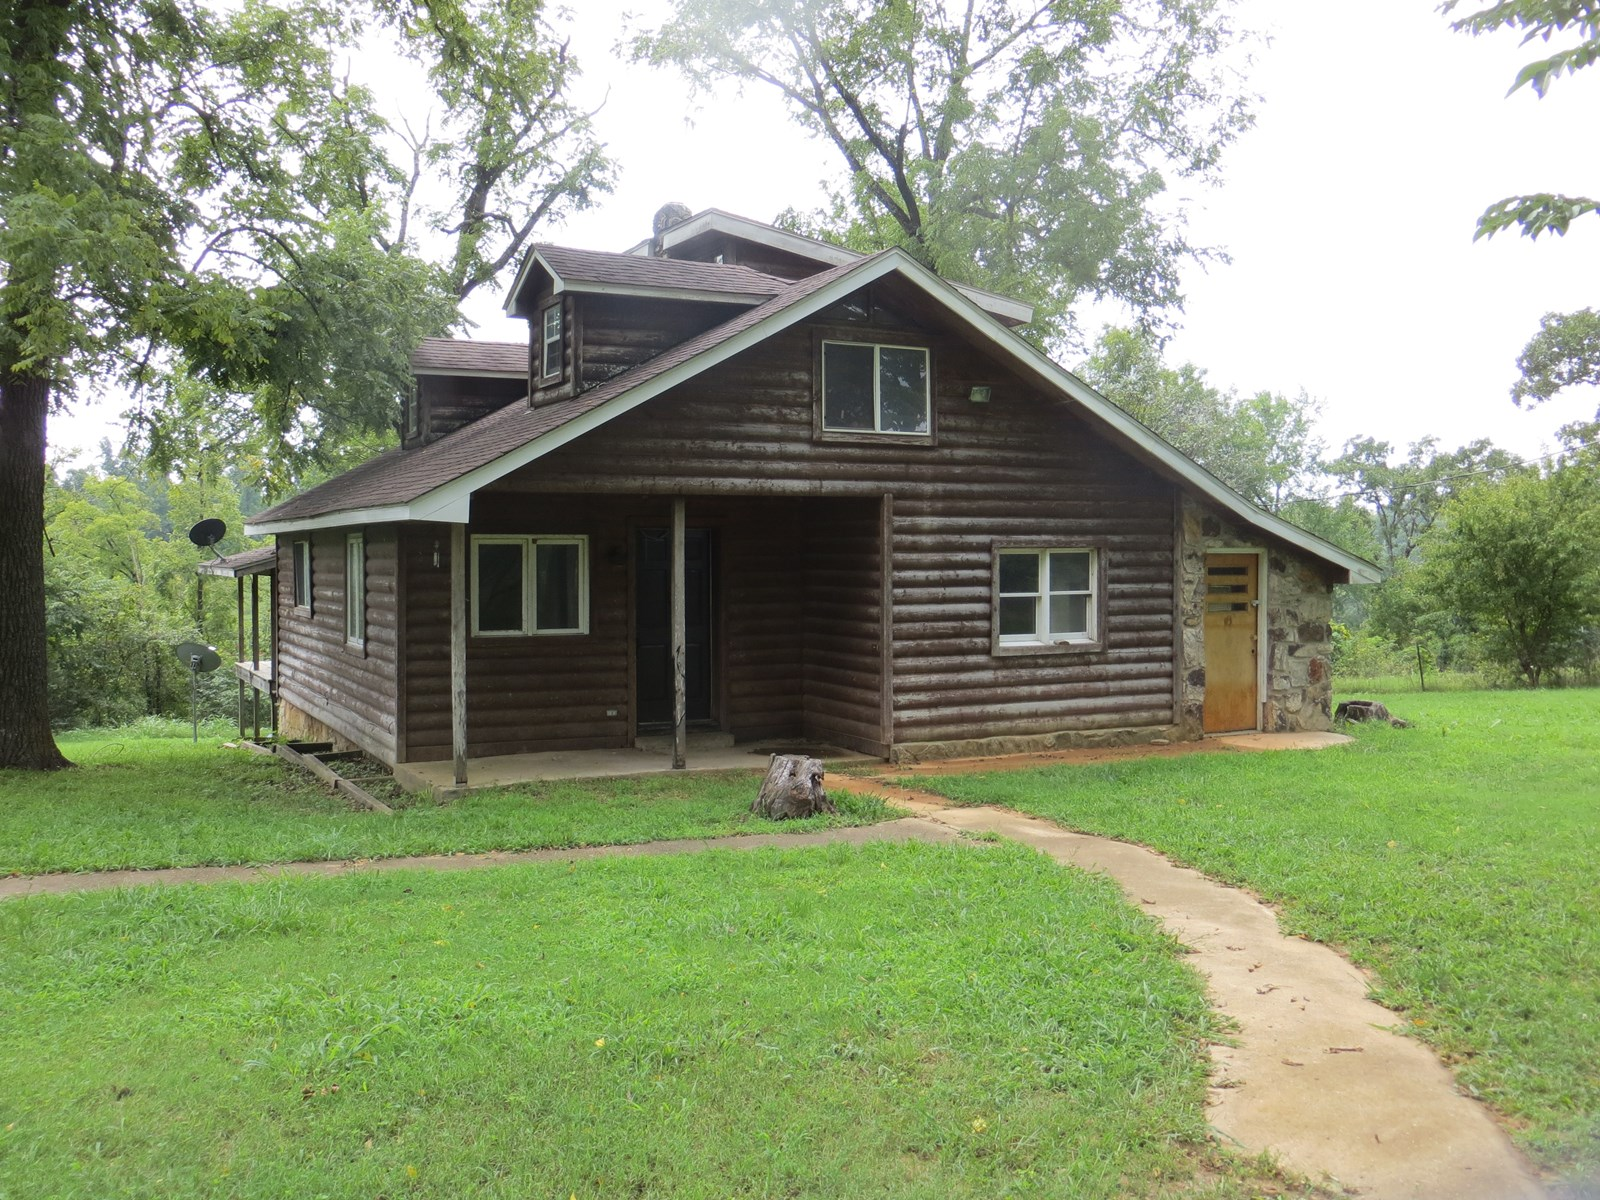 Sold Two Cabins For Sale In Northern Arkansas